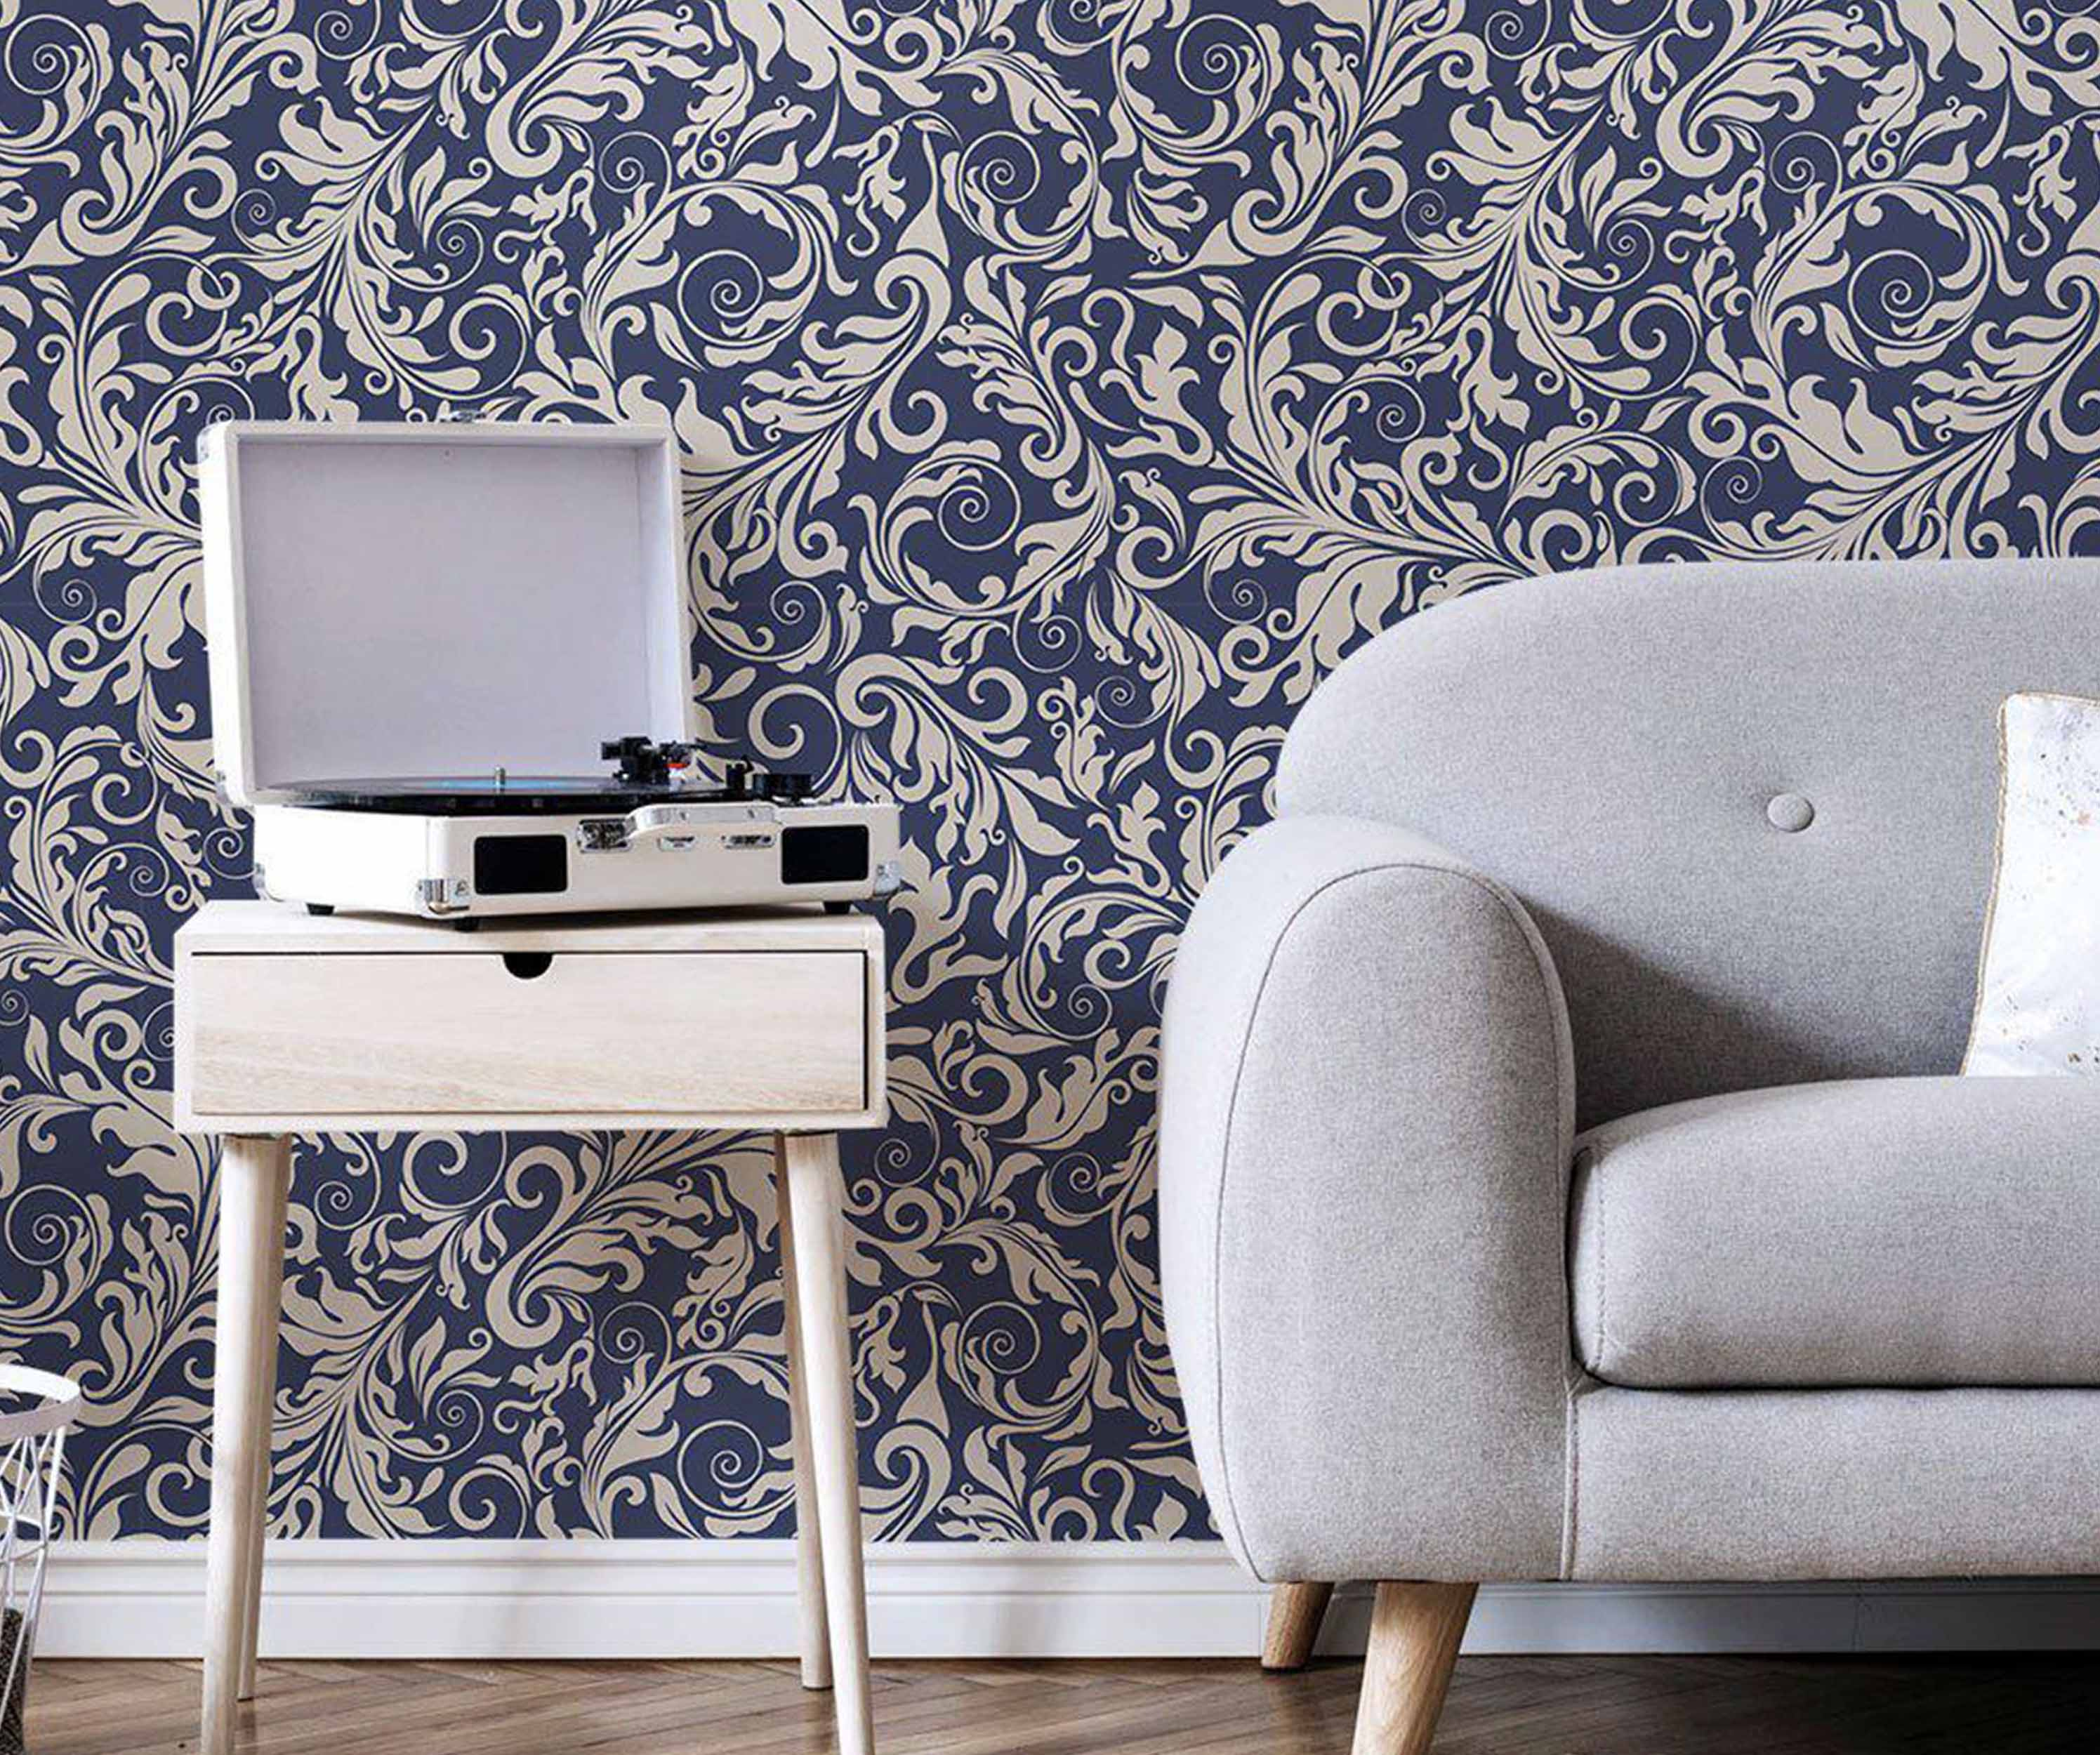 Baroque Wallpaper from Eazywallz